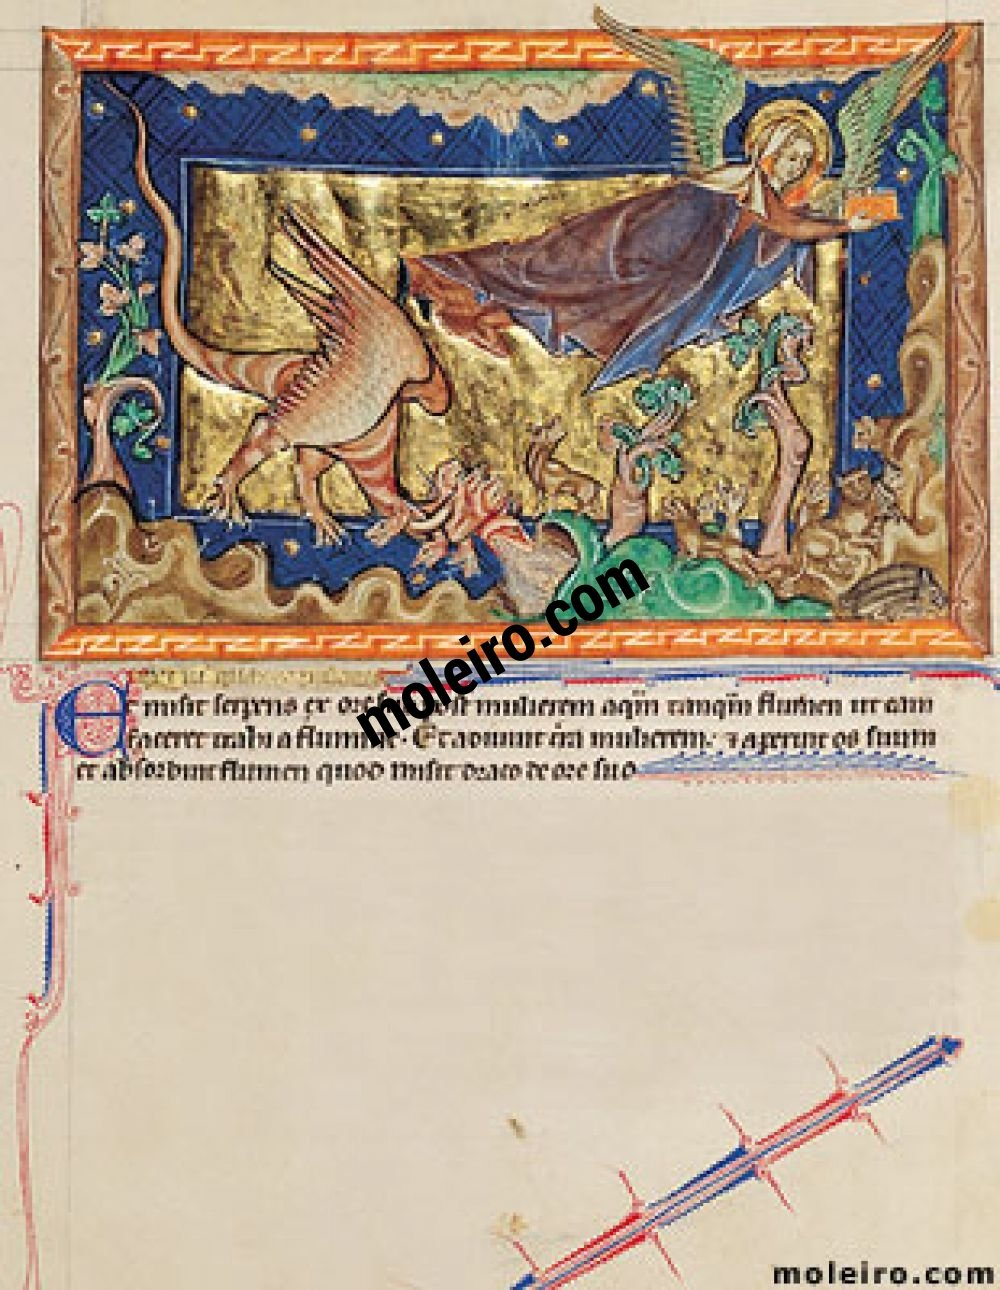 Gulbenkian Apocalypse f. 32r, The dragon casts out the flood at the woman